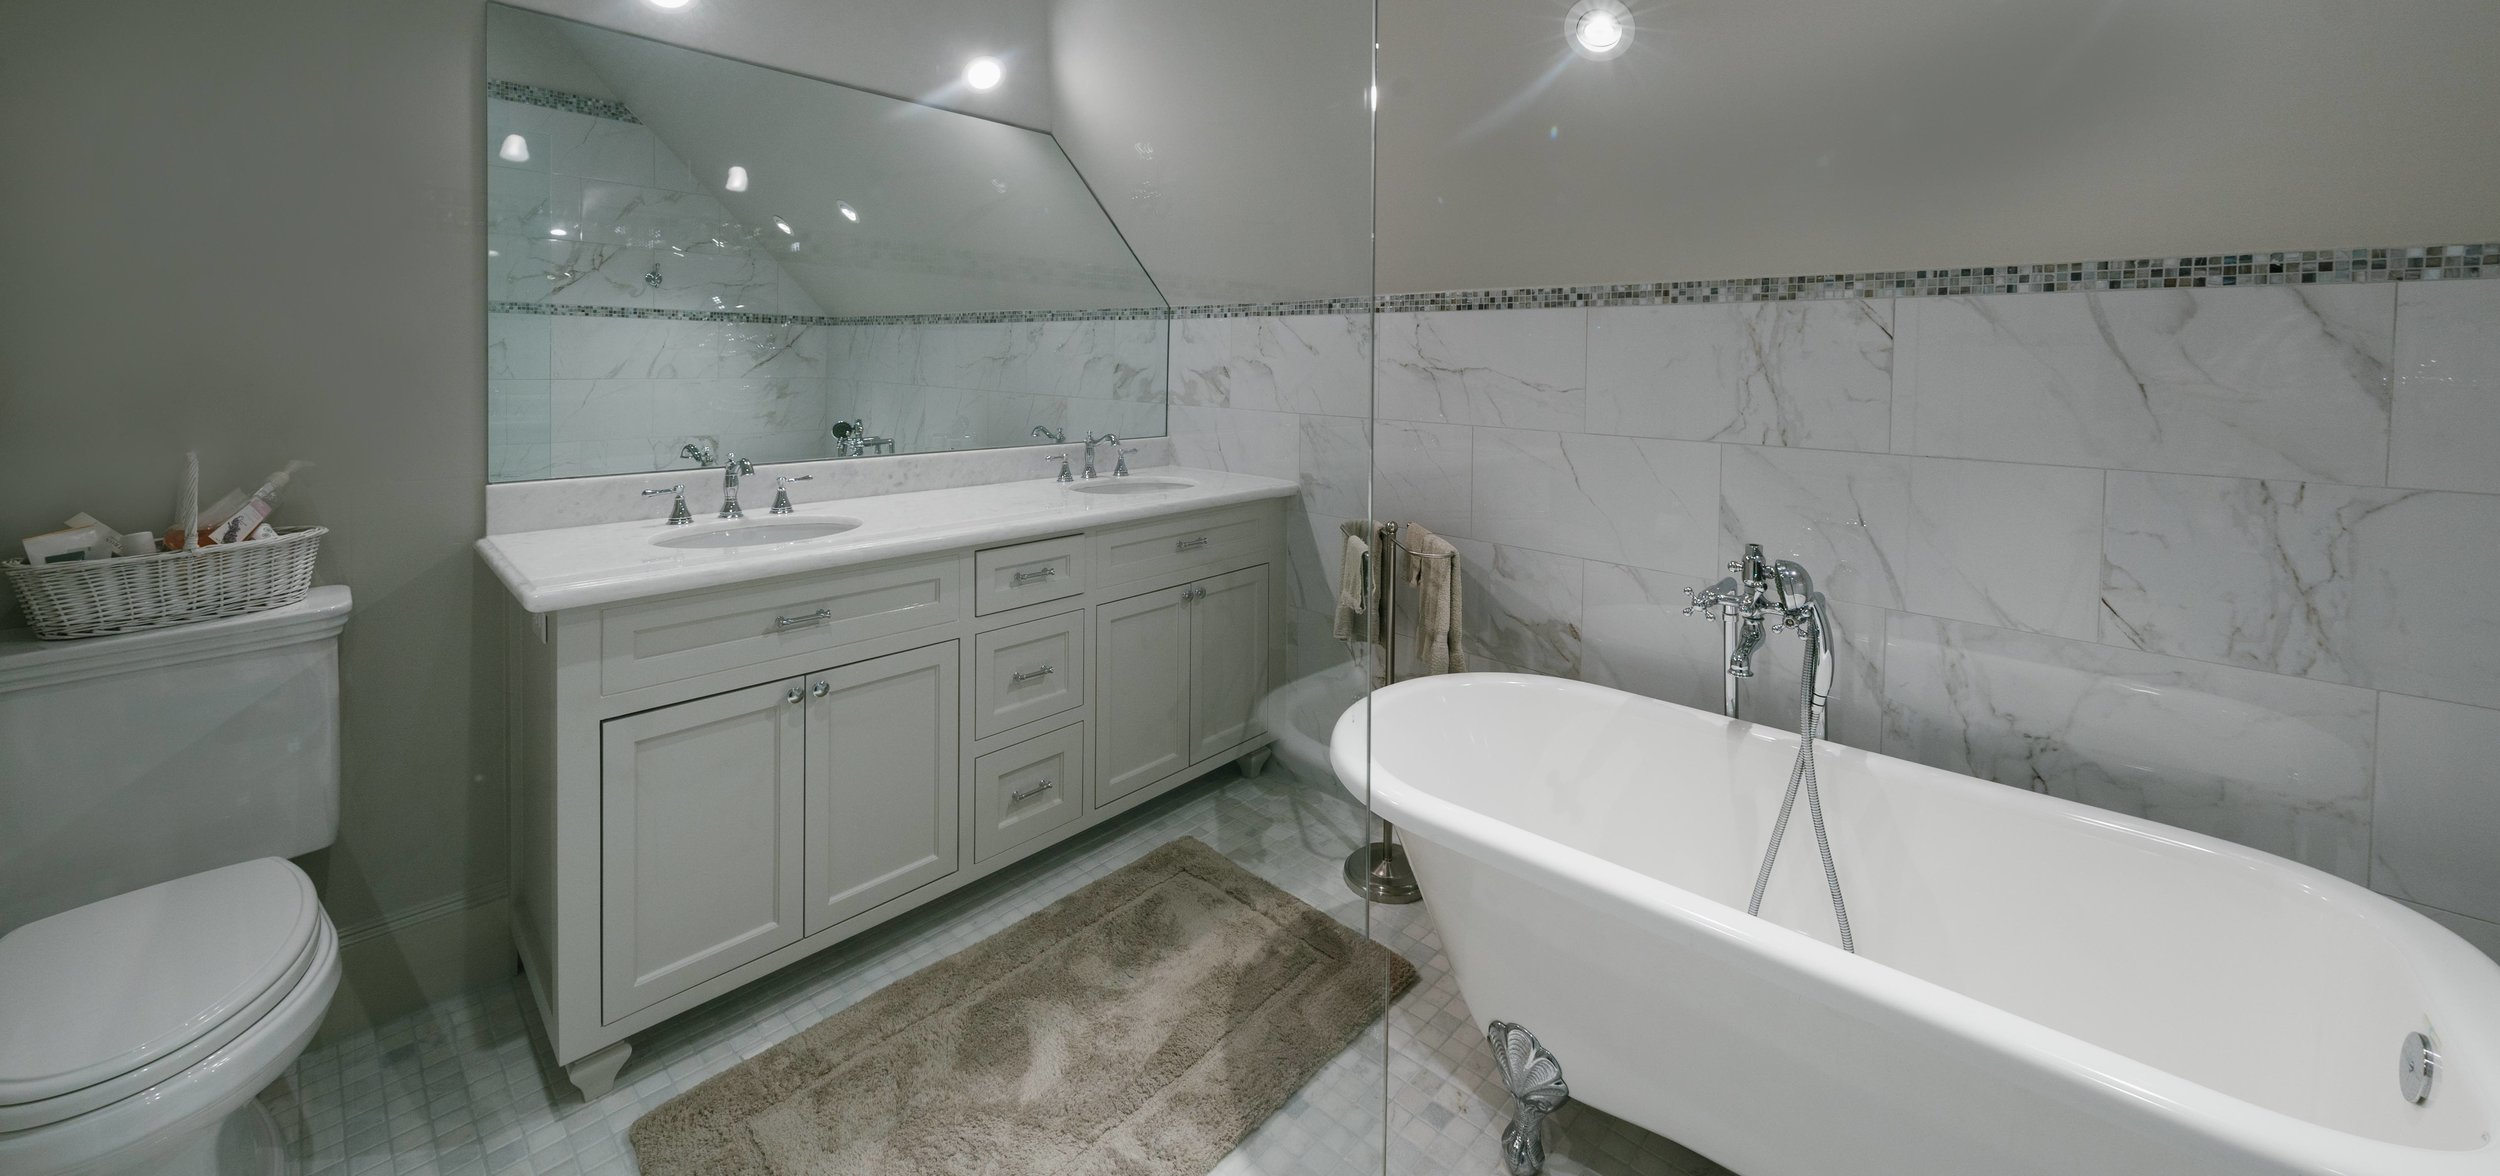 The view from the walk in shower shows the free standing clawfoot bathtub, the custom cabinets and the clean white marble countertops. Even though simple, this guest bathroom is a place of elegance and truly an escape for each guest.